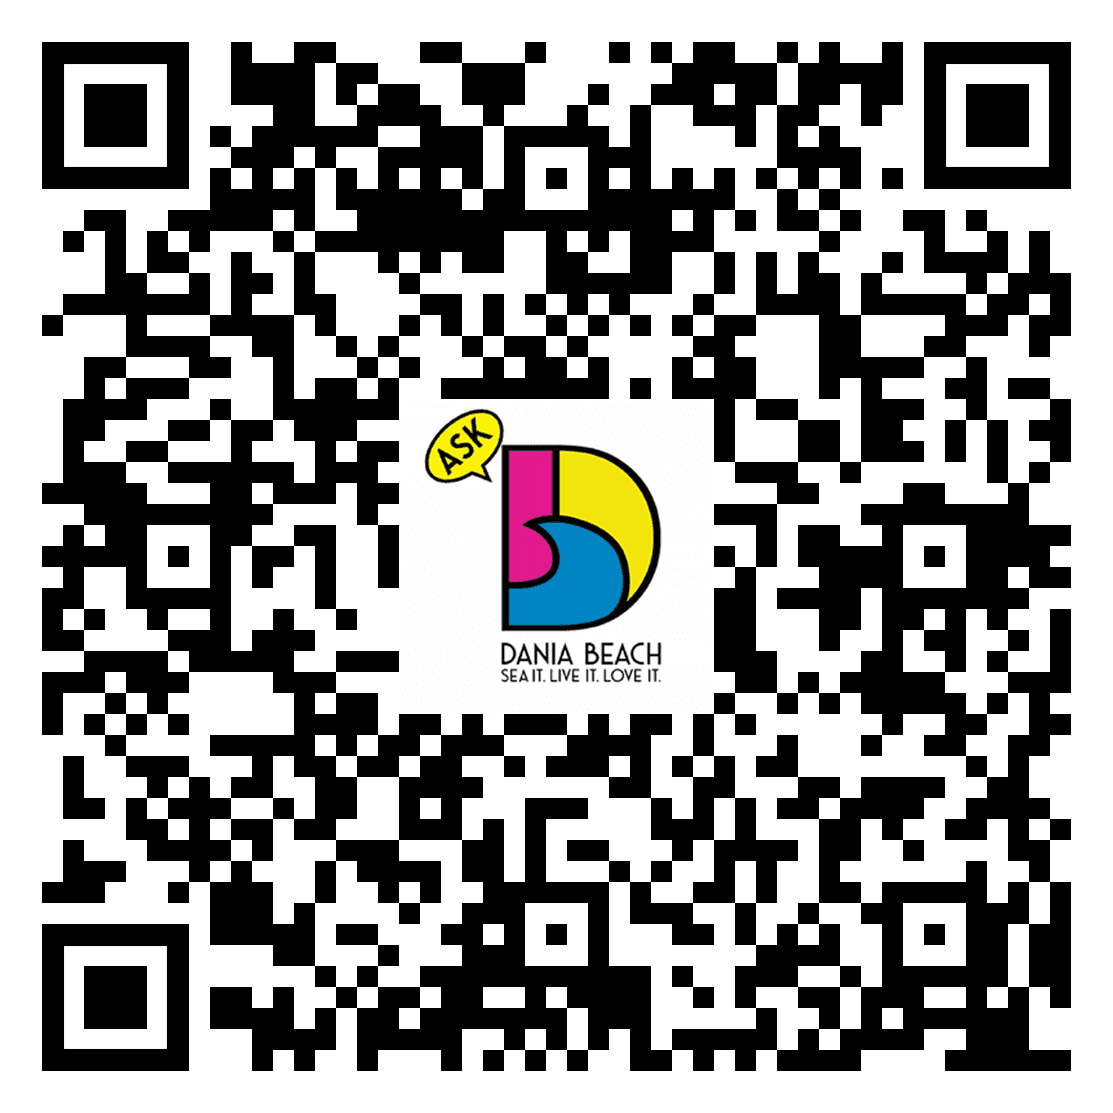 qr-code to ask dania beach google play store